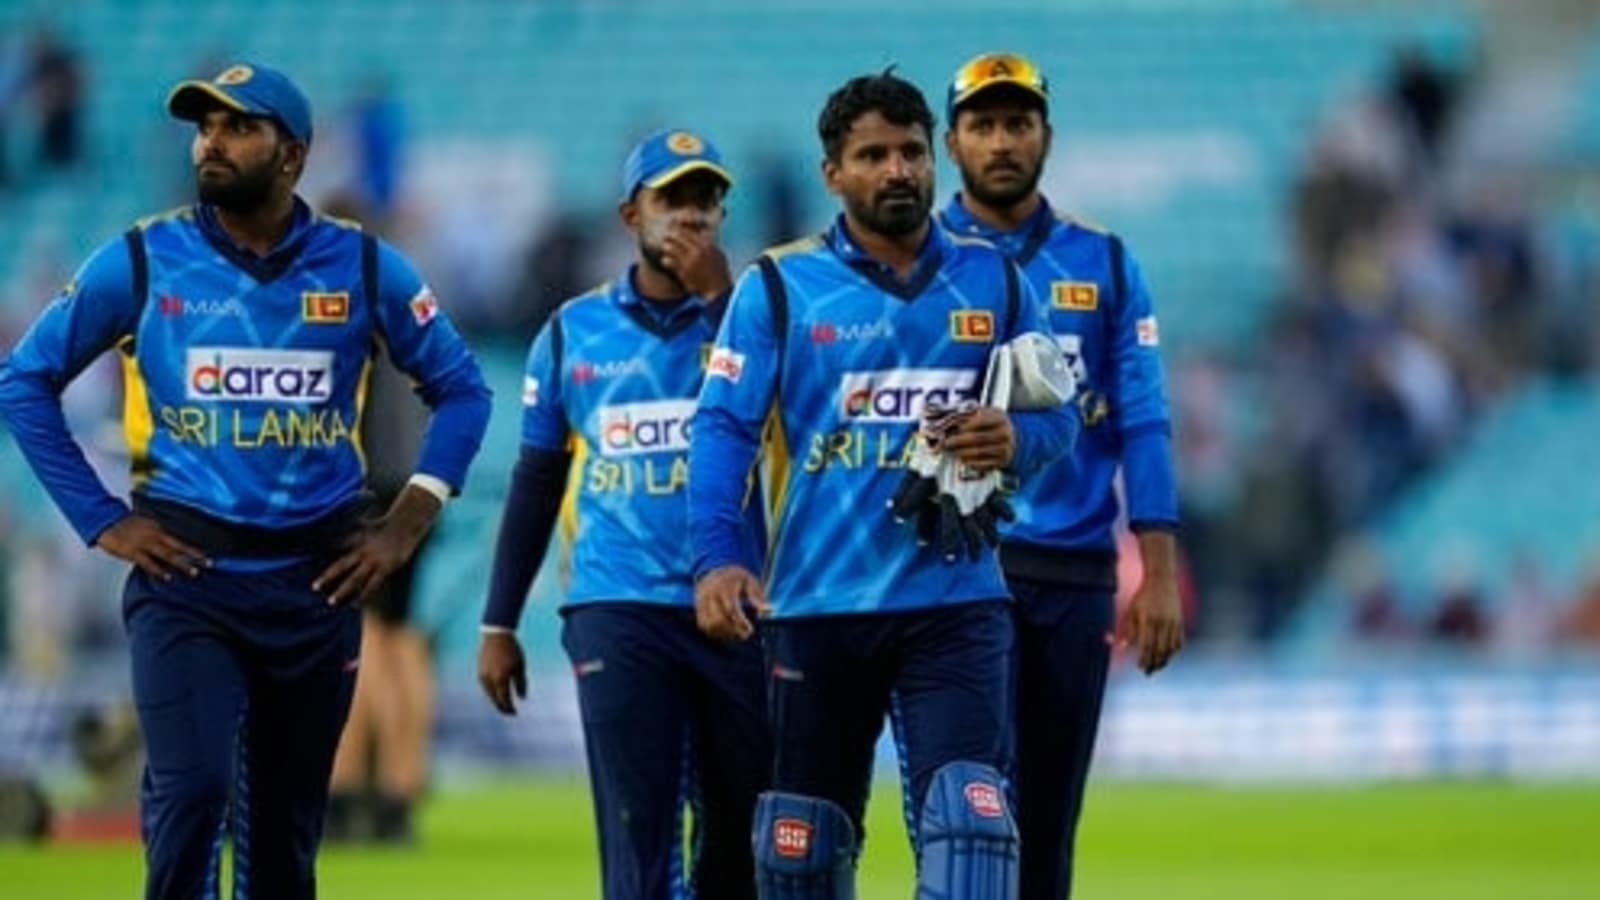 Sri Lanka players to come out of isolation after testing negative for COVID-19, ahead of India series - Report | Cricket - Hindustan Times